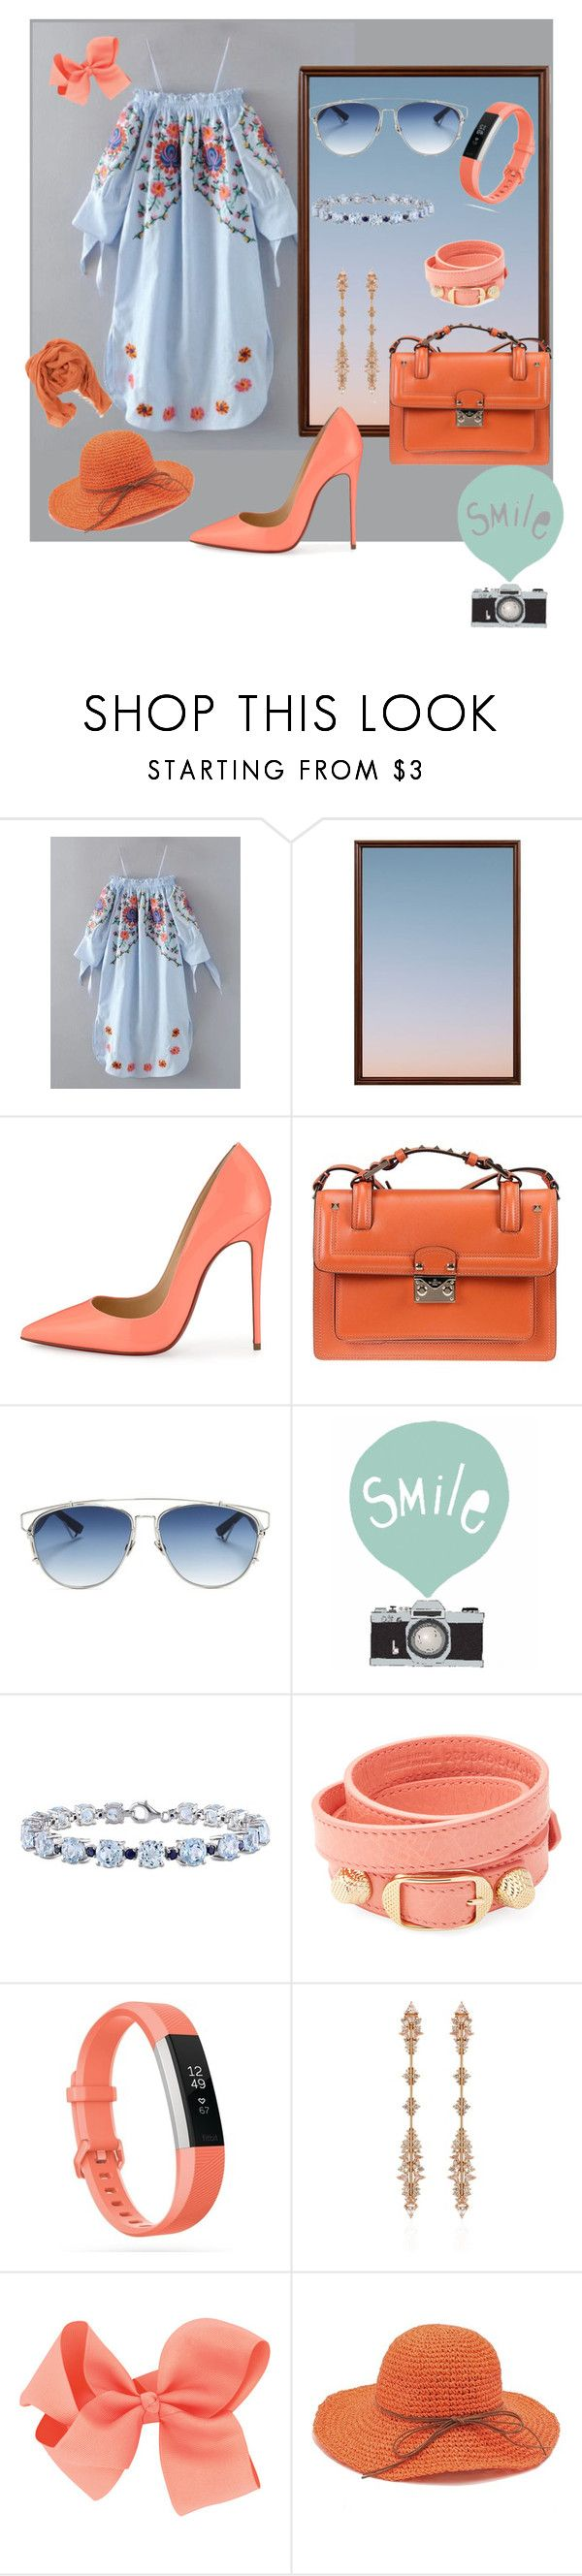 """""""Untitled #157"""" by rozy56 ❤ liked on Polyvore featuring Pottery Barn, Christian Louboutin, Valentino, Christian Dior, Seventy Tree, Miadora, Balenciaga, Fitbit, Fernando Jorge and Pomandère"""